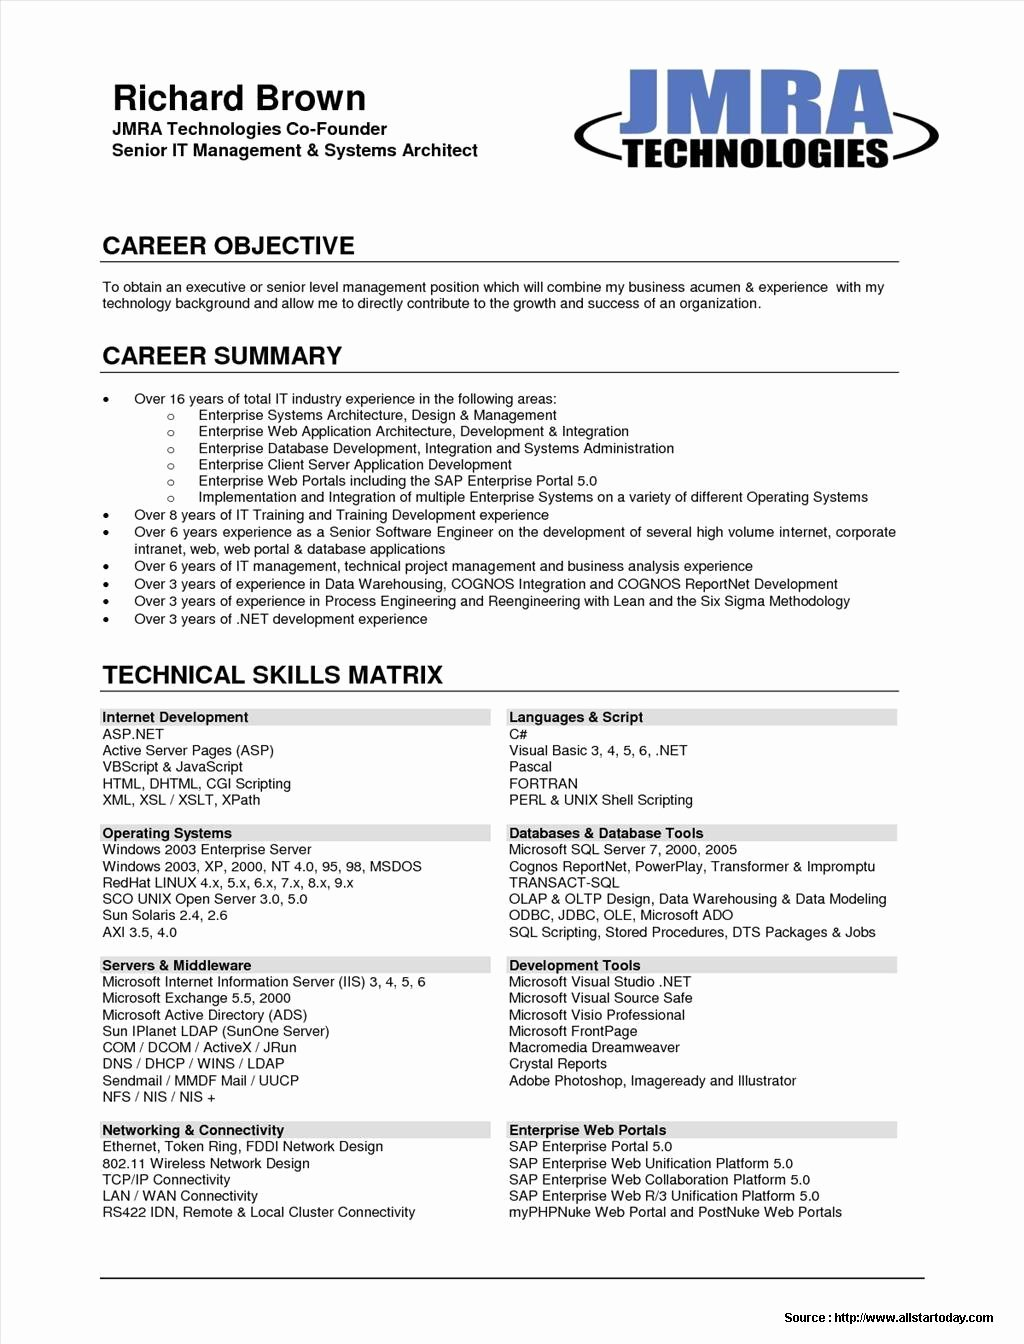 Resume Objective for Rn Position Resume Resume